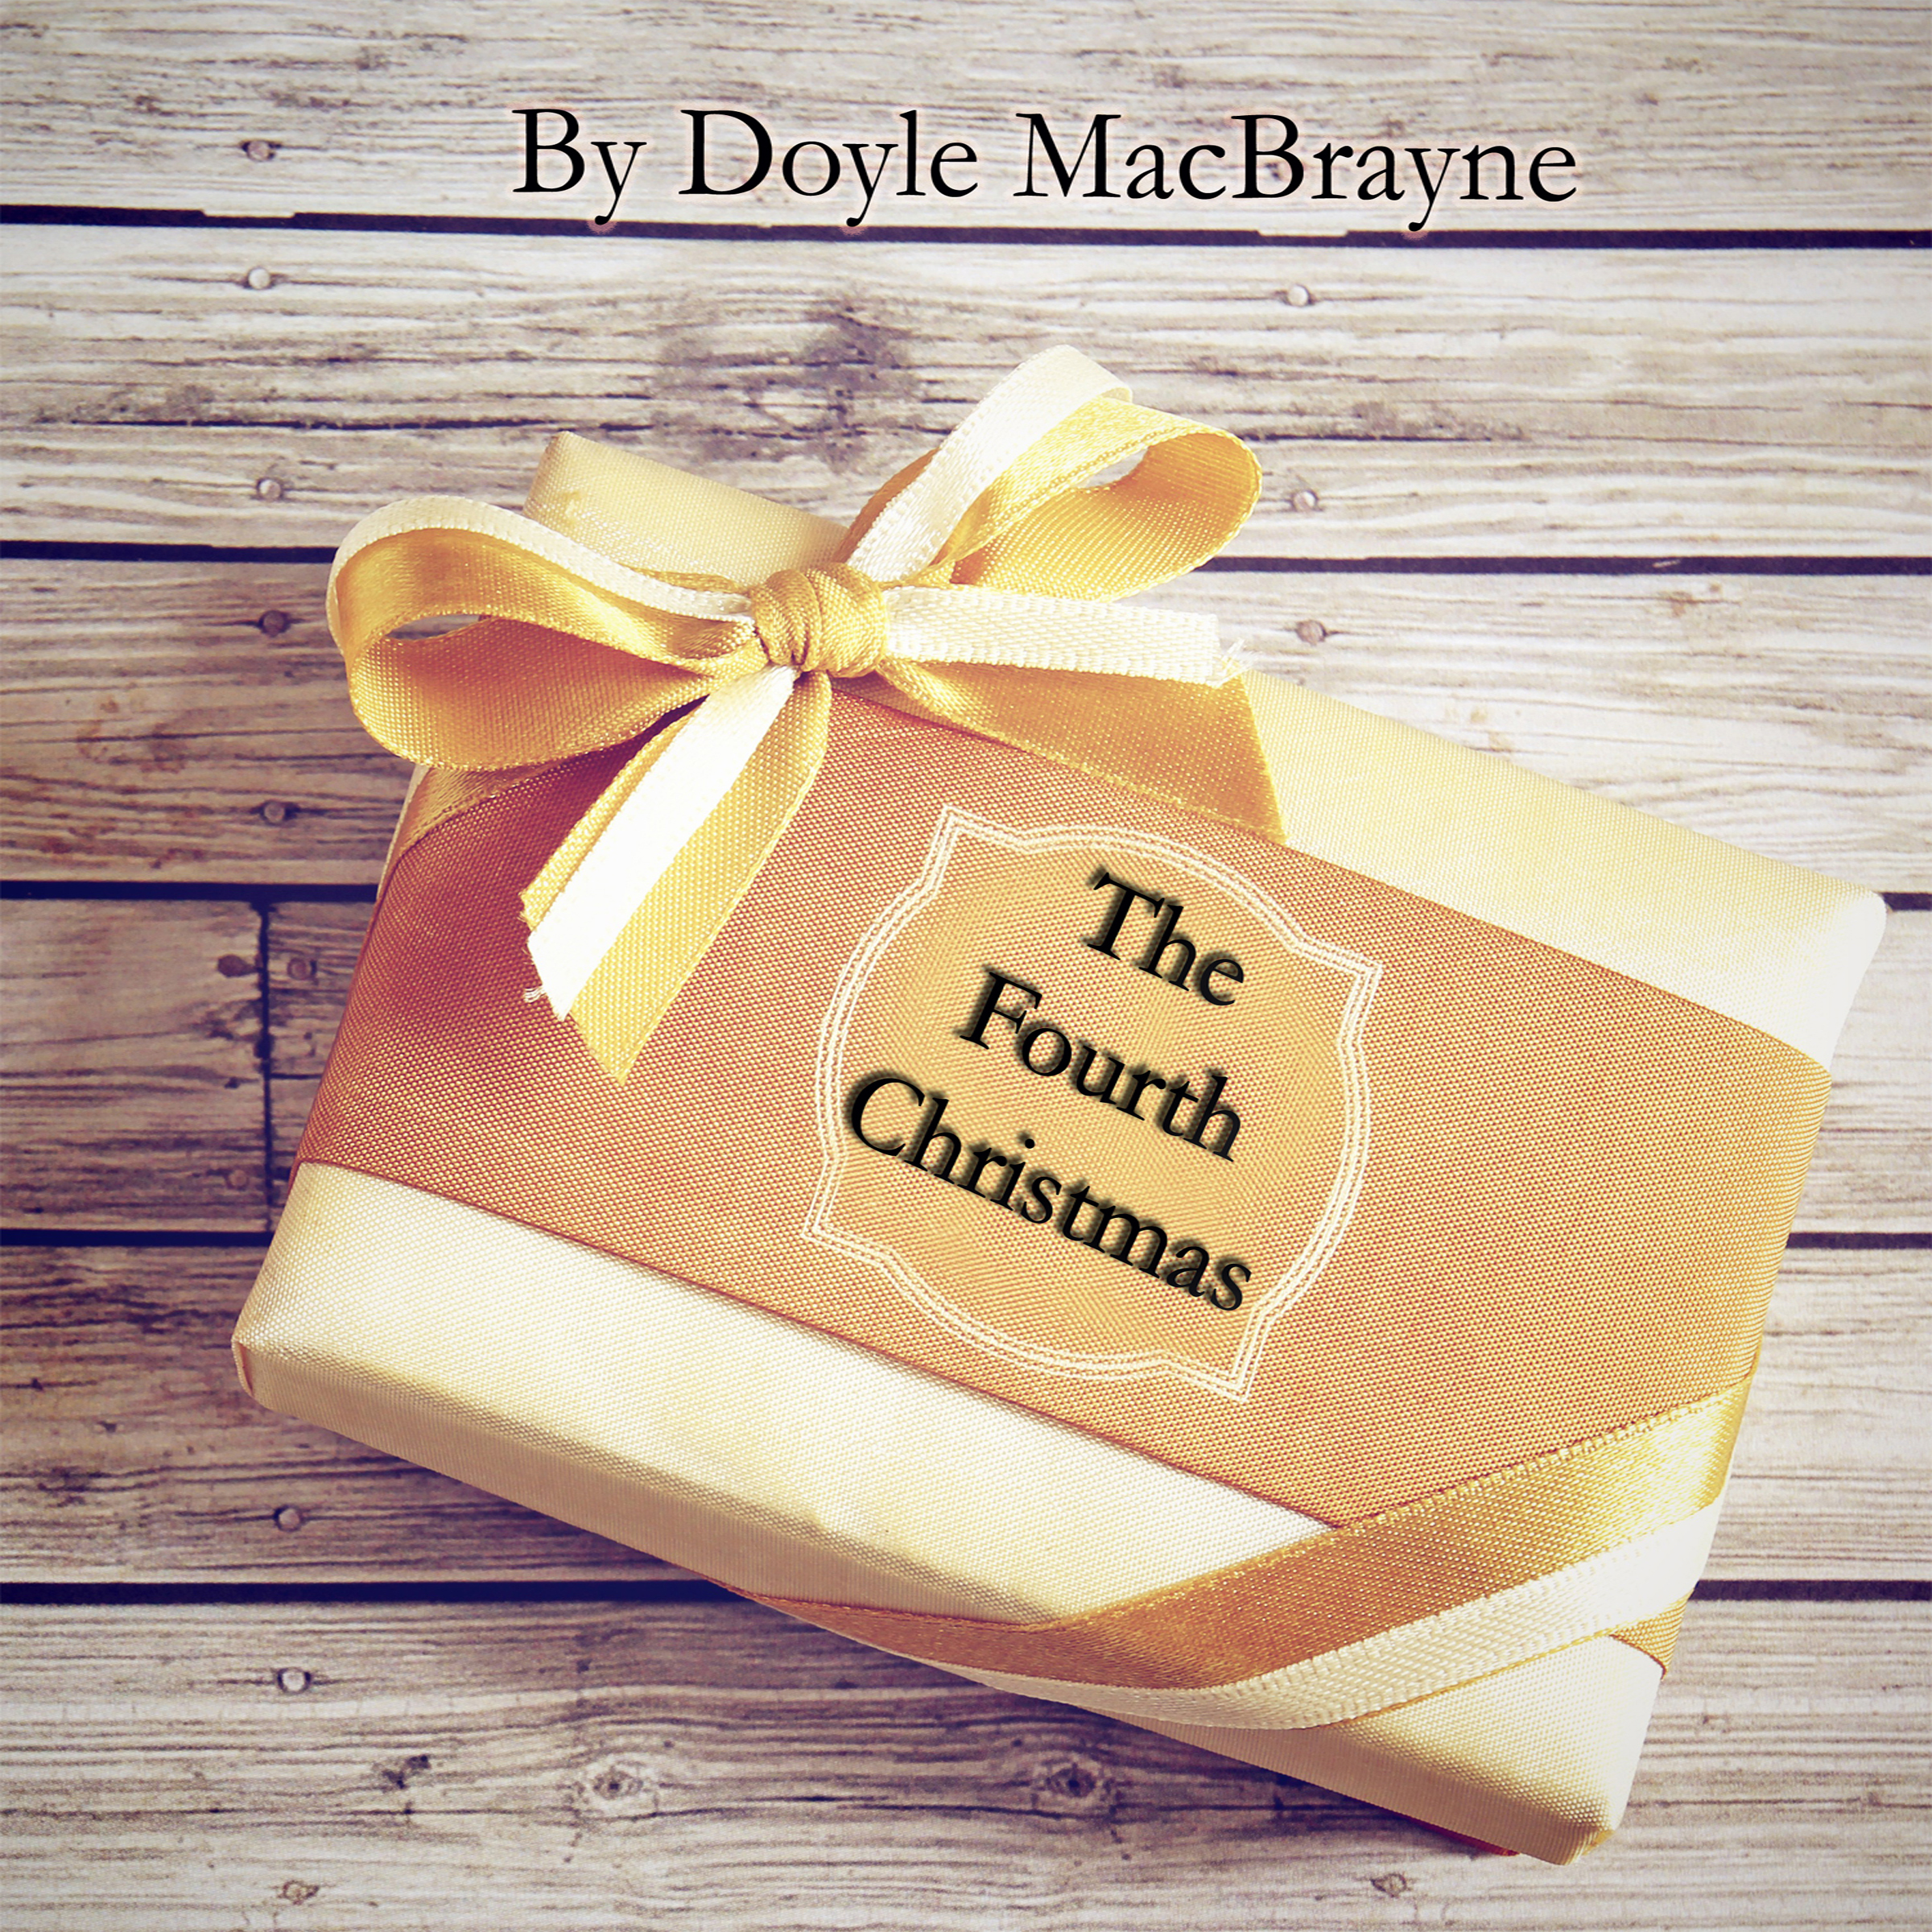 4th christmas audiobook cover